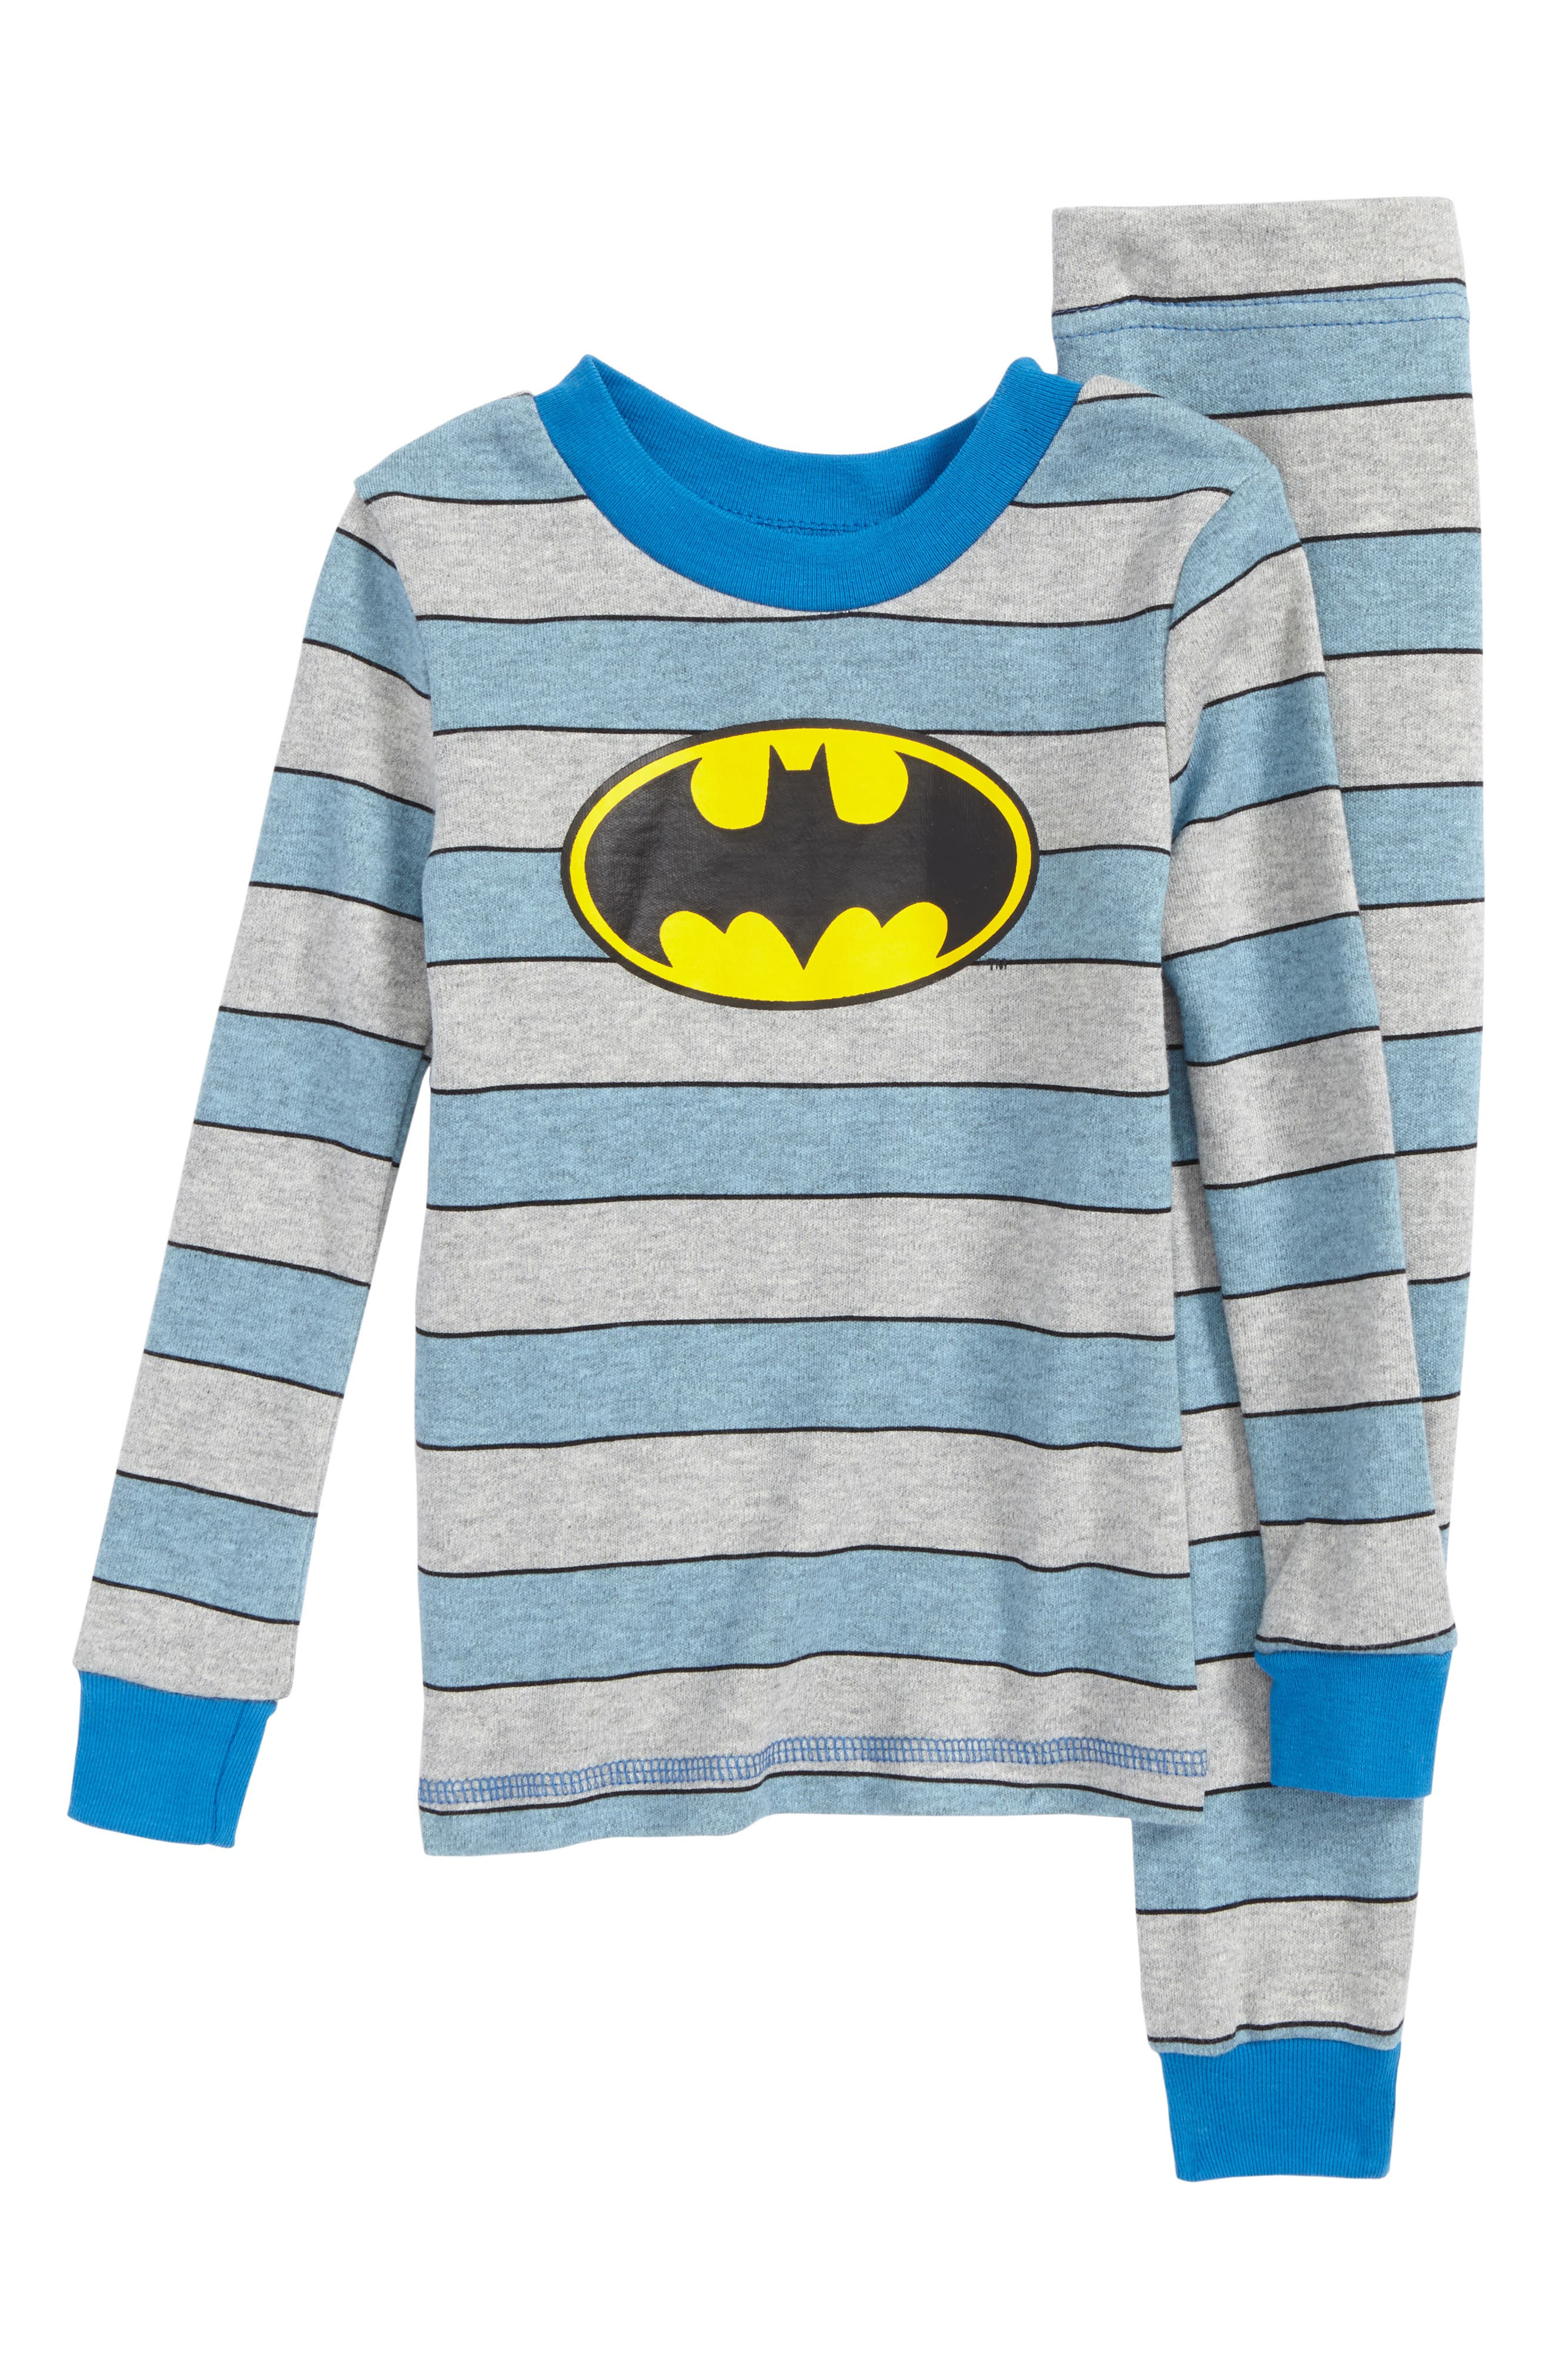 Batman Fitted Two-Piece Pajama Set,                         Main,                         color, 469